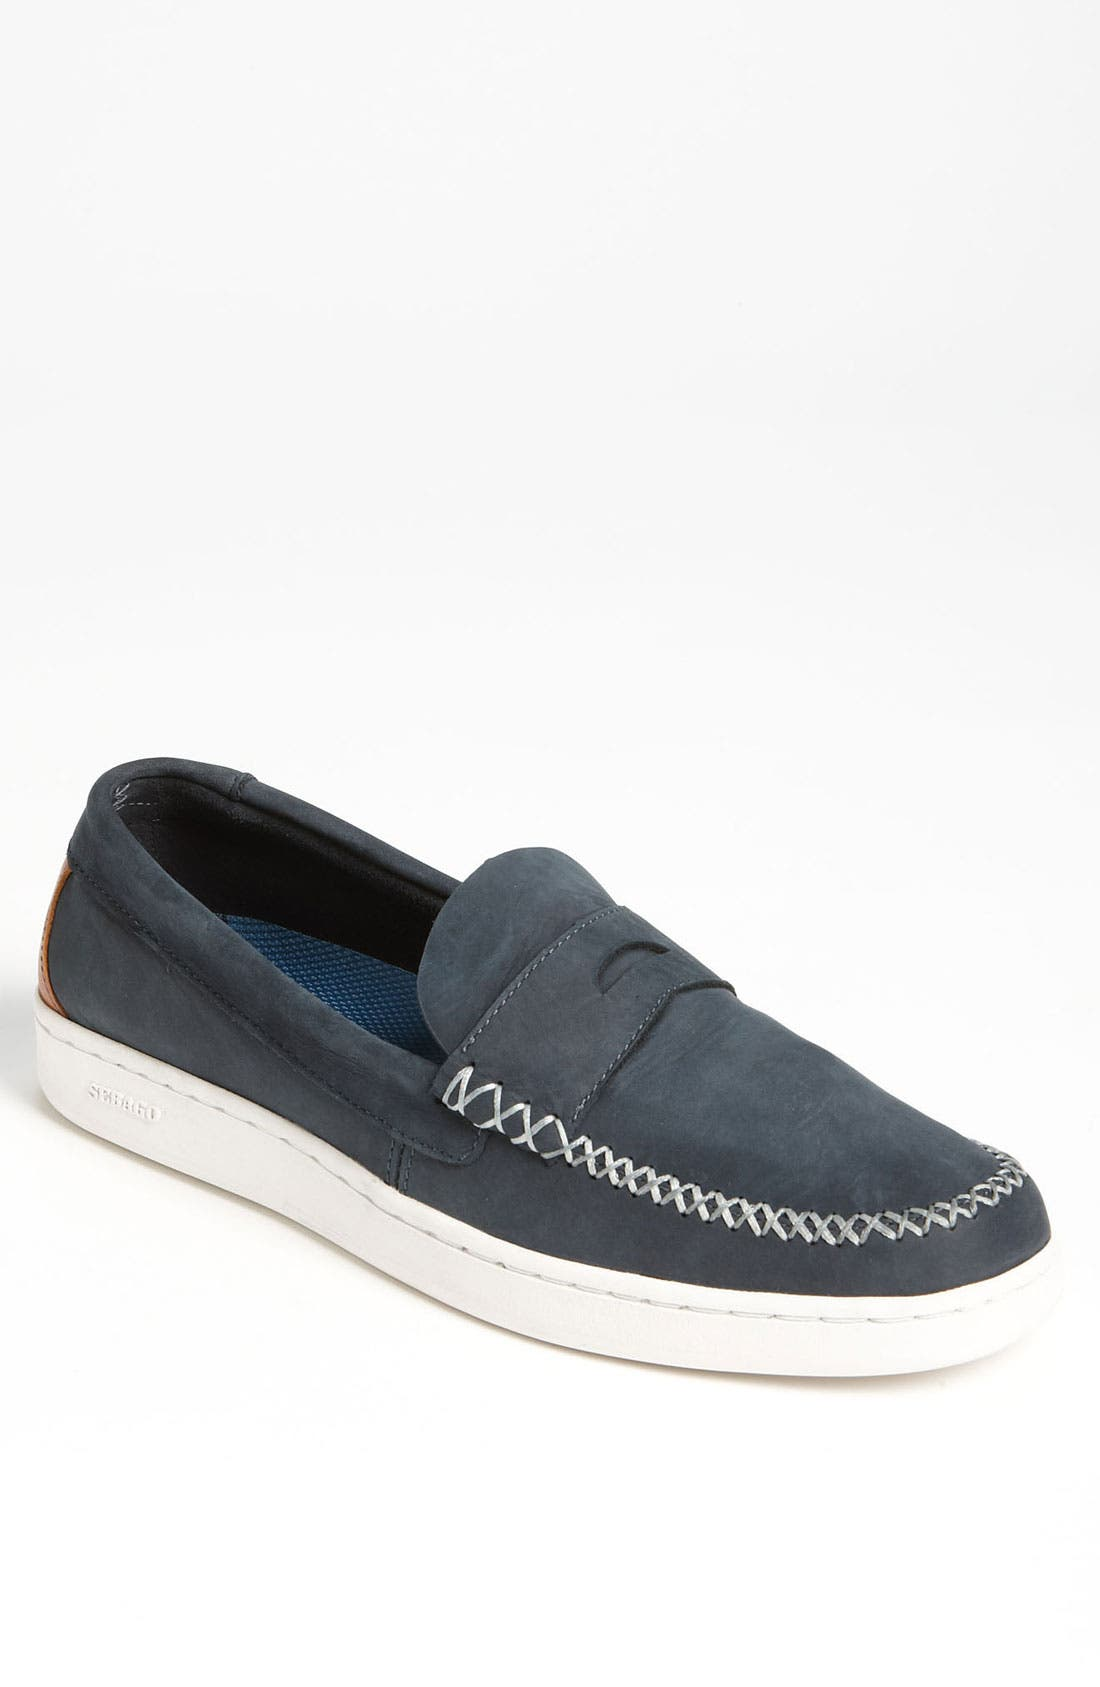 Alternate Image 1 Selected - Sebago 'Wentworth Classic' Loafer